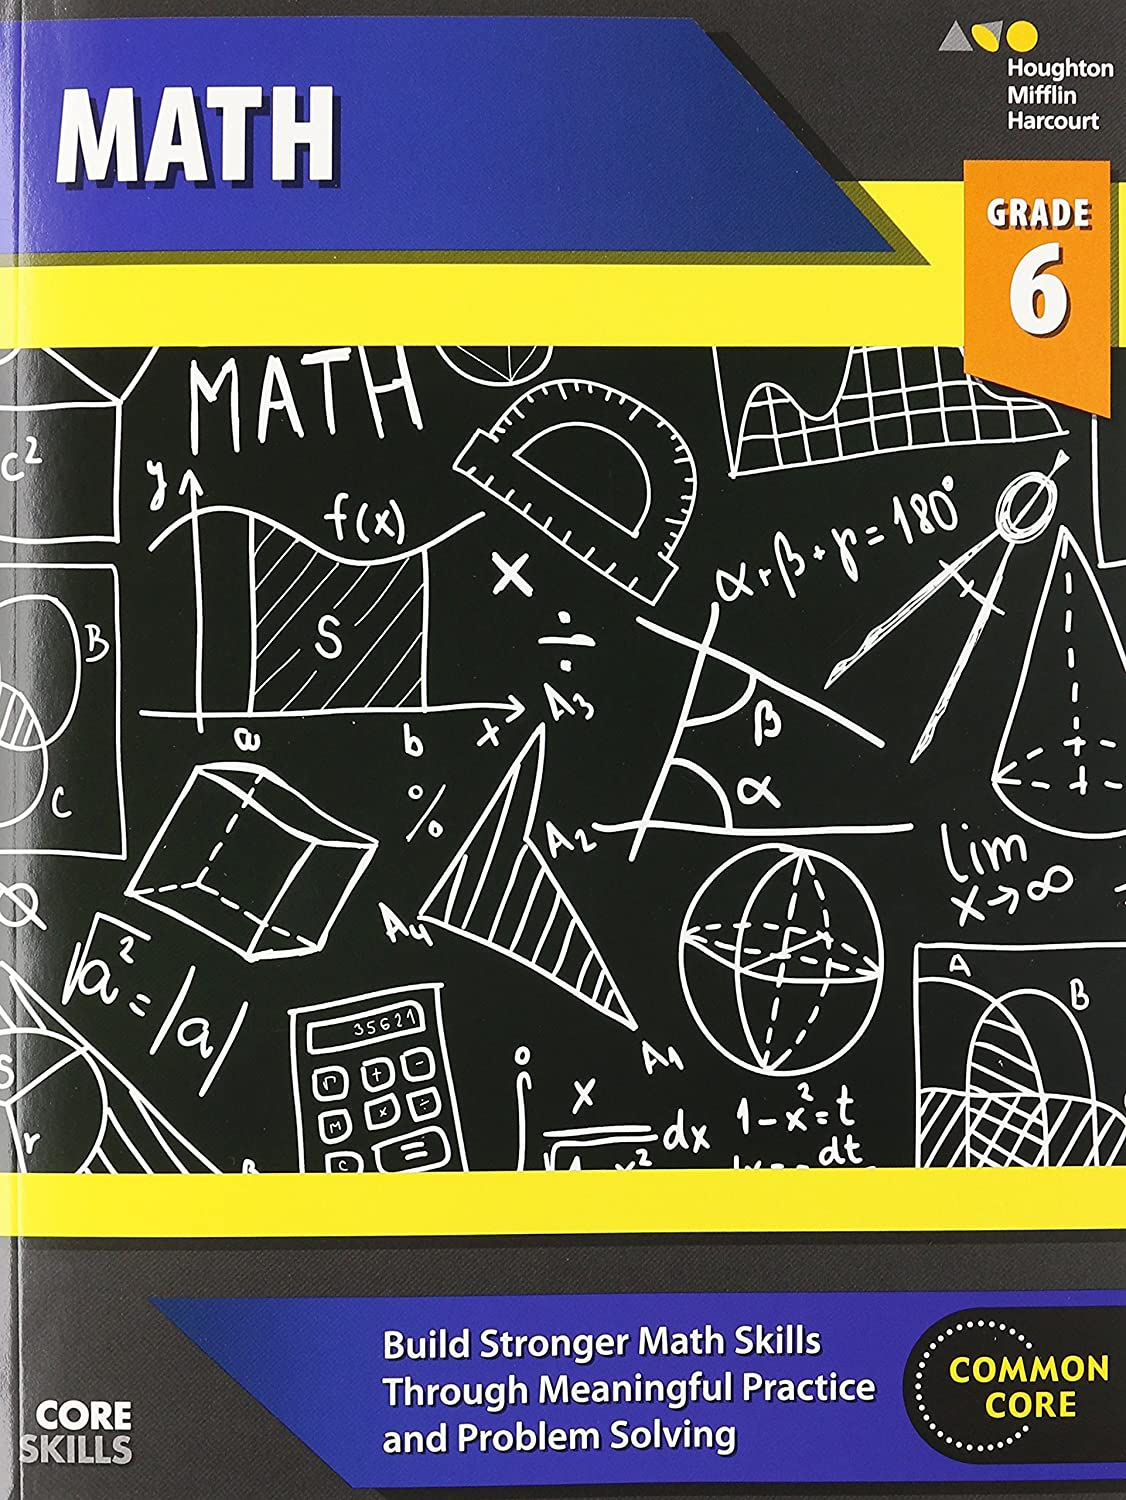 Worksheets Houghton Mifflin Math Worksheets Grade 3 steck vaughn core skills mathematics workbook grade 6 9780544268241 amazon com books